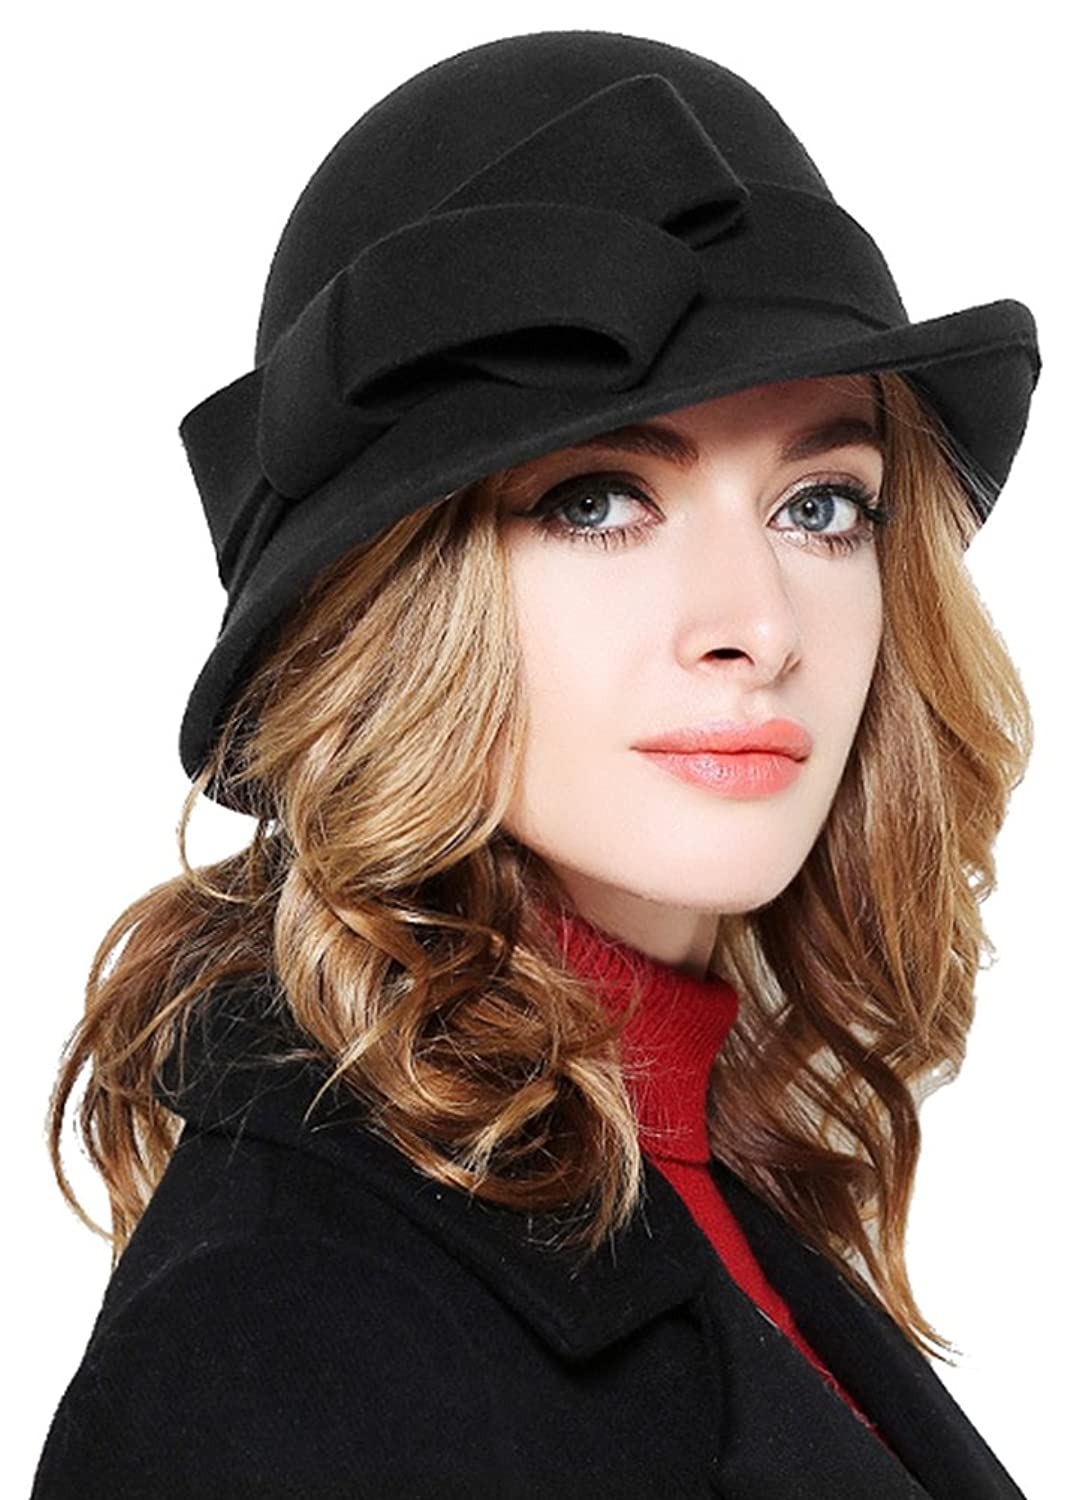 1920s Accessories | Great Gatsby Accessories Guide Bellady Women Solid Color Winter Hat 100% Wool Cloche Bucket with Bow Accent $21.99 AT vintagedancer.com